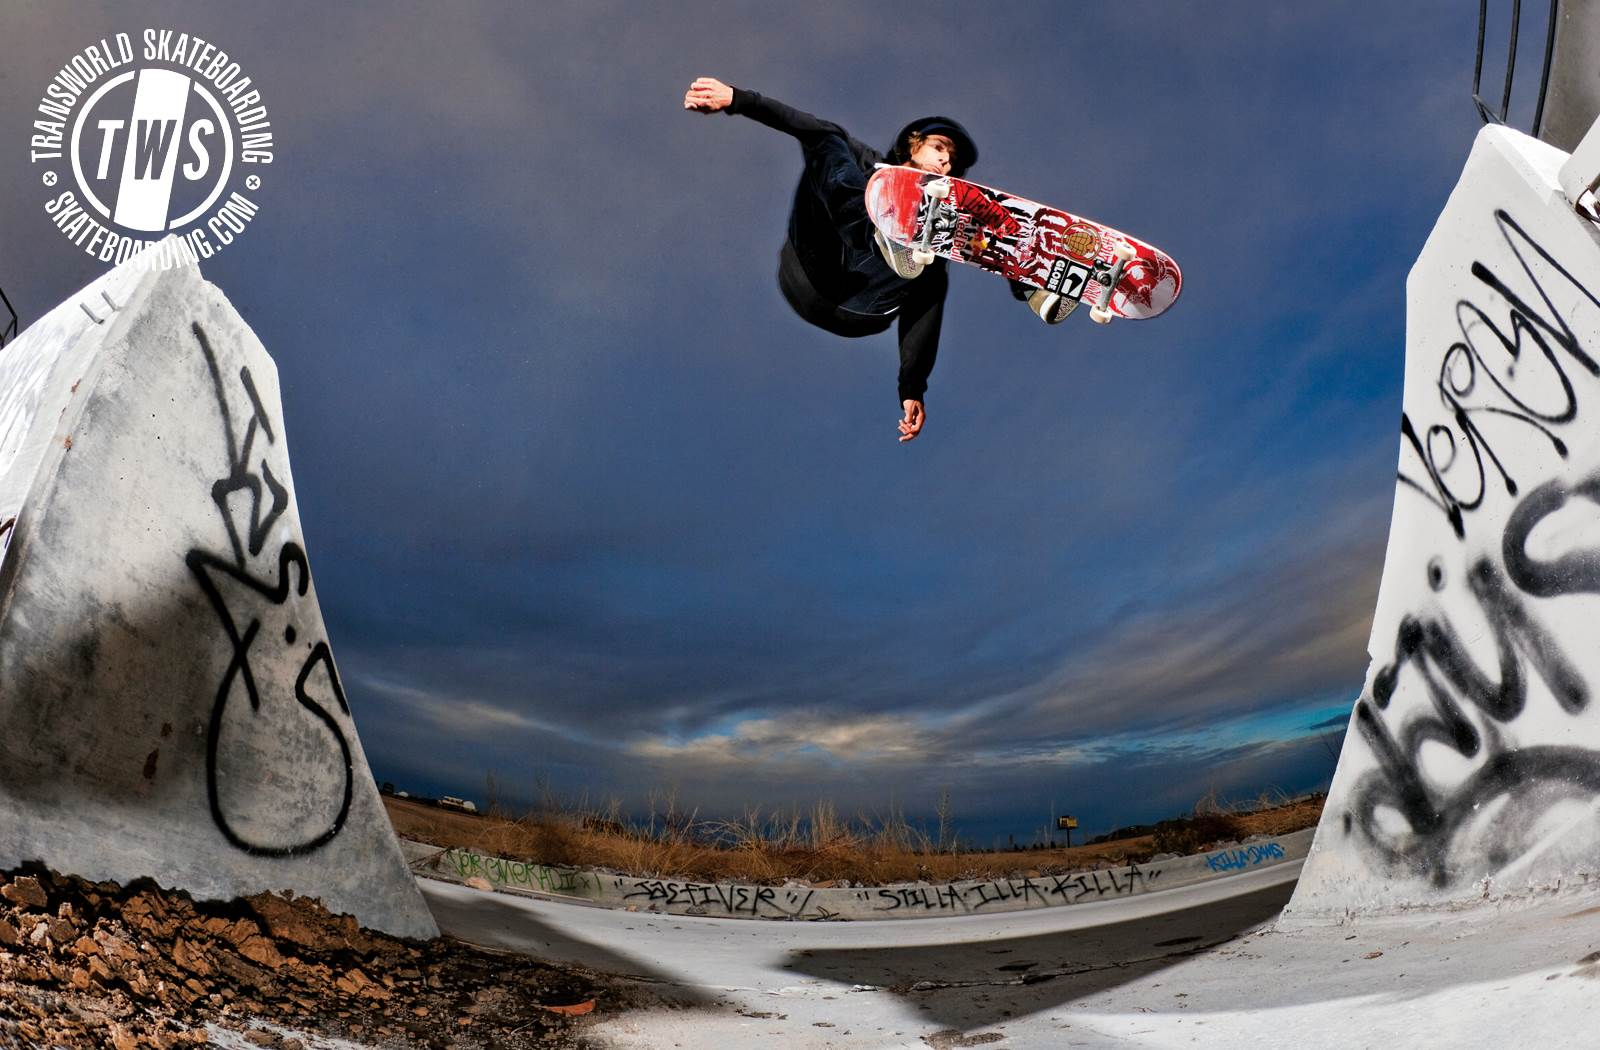 skateboarding wallpaper 1600x1050